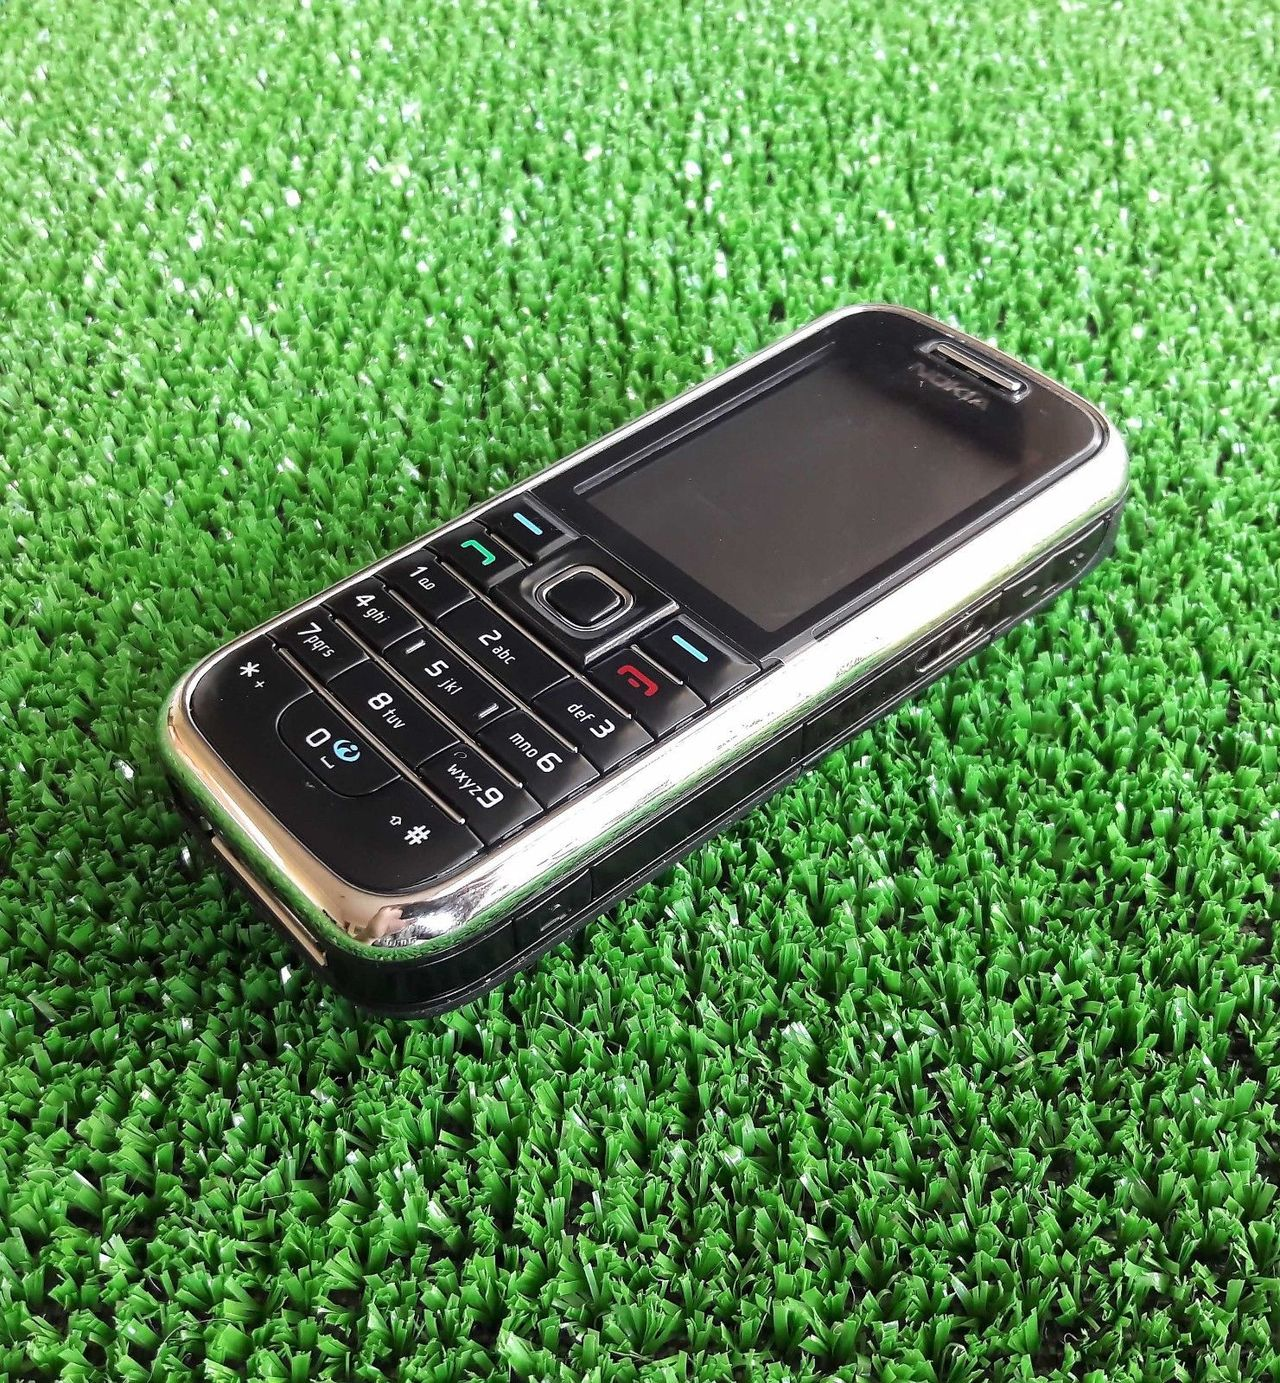 Refurbished nokia 6233 3G mobile phone bluetooth mp3 player classic durable phone black 9